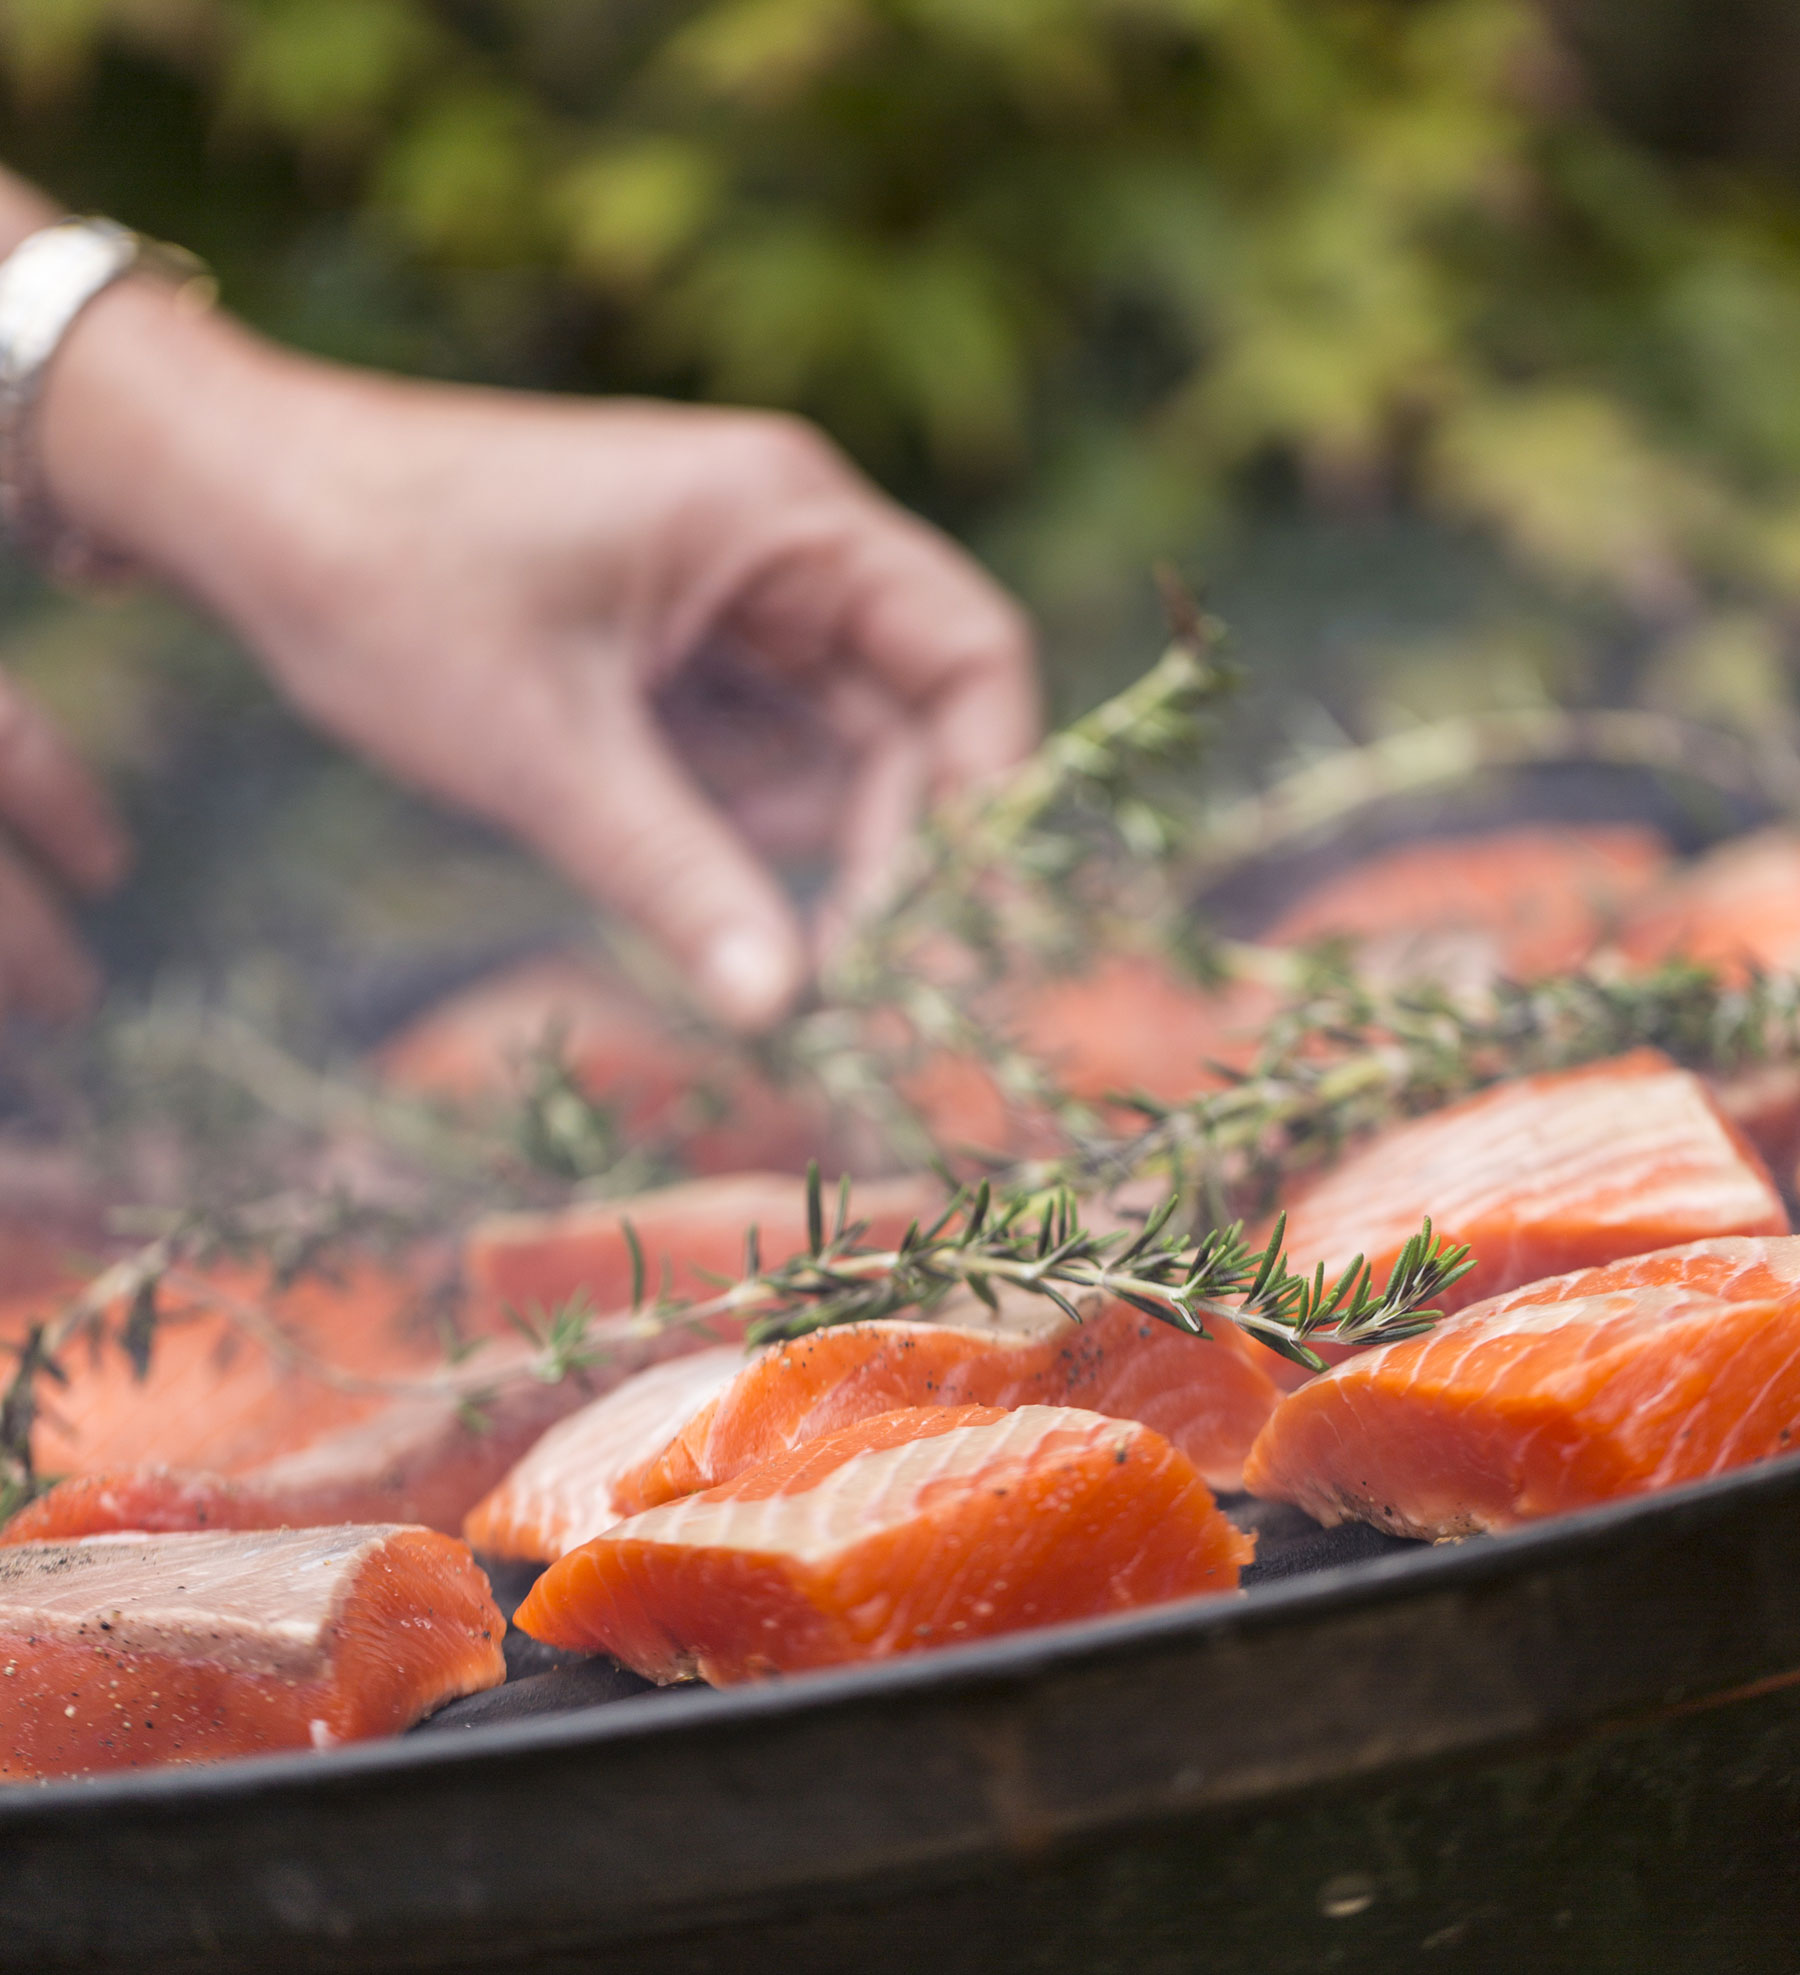 a close up of a hand placing rosemary on salmon steaks on an outdoor barbeque